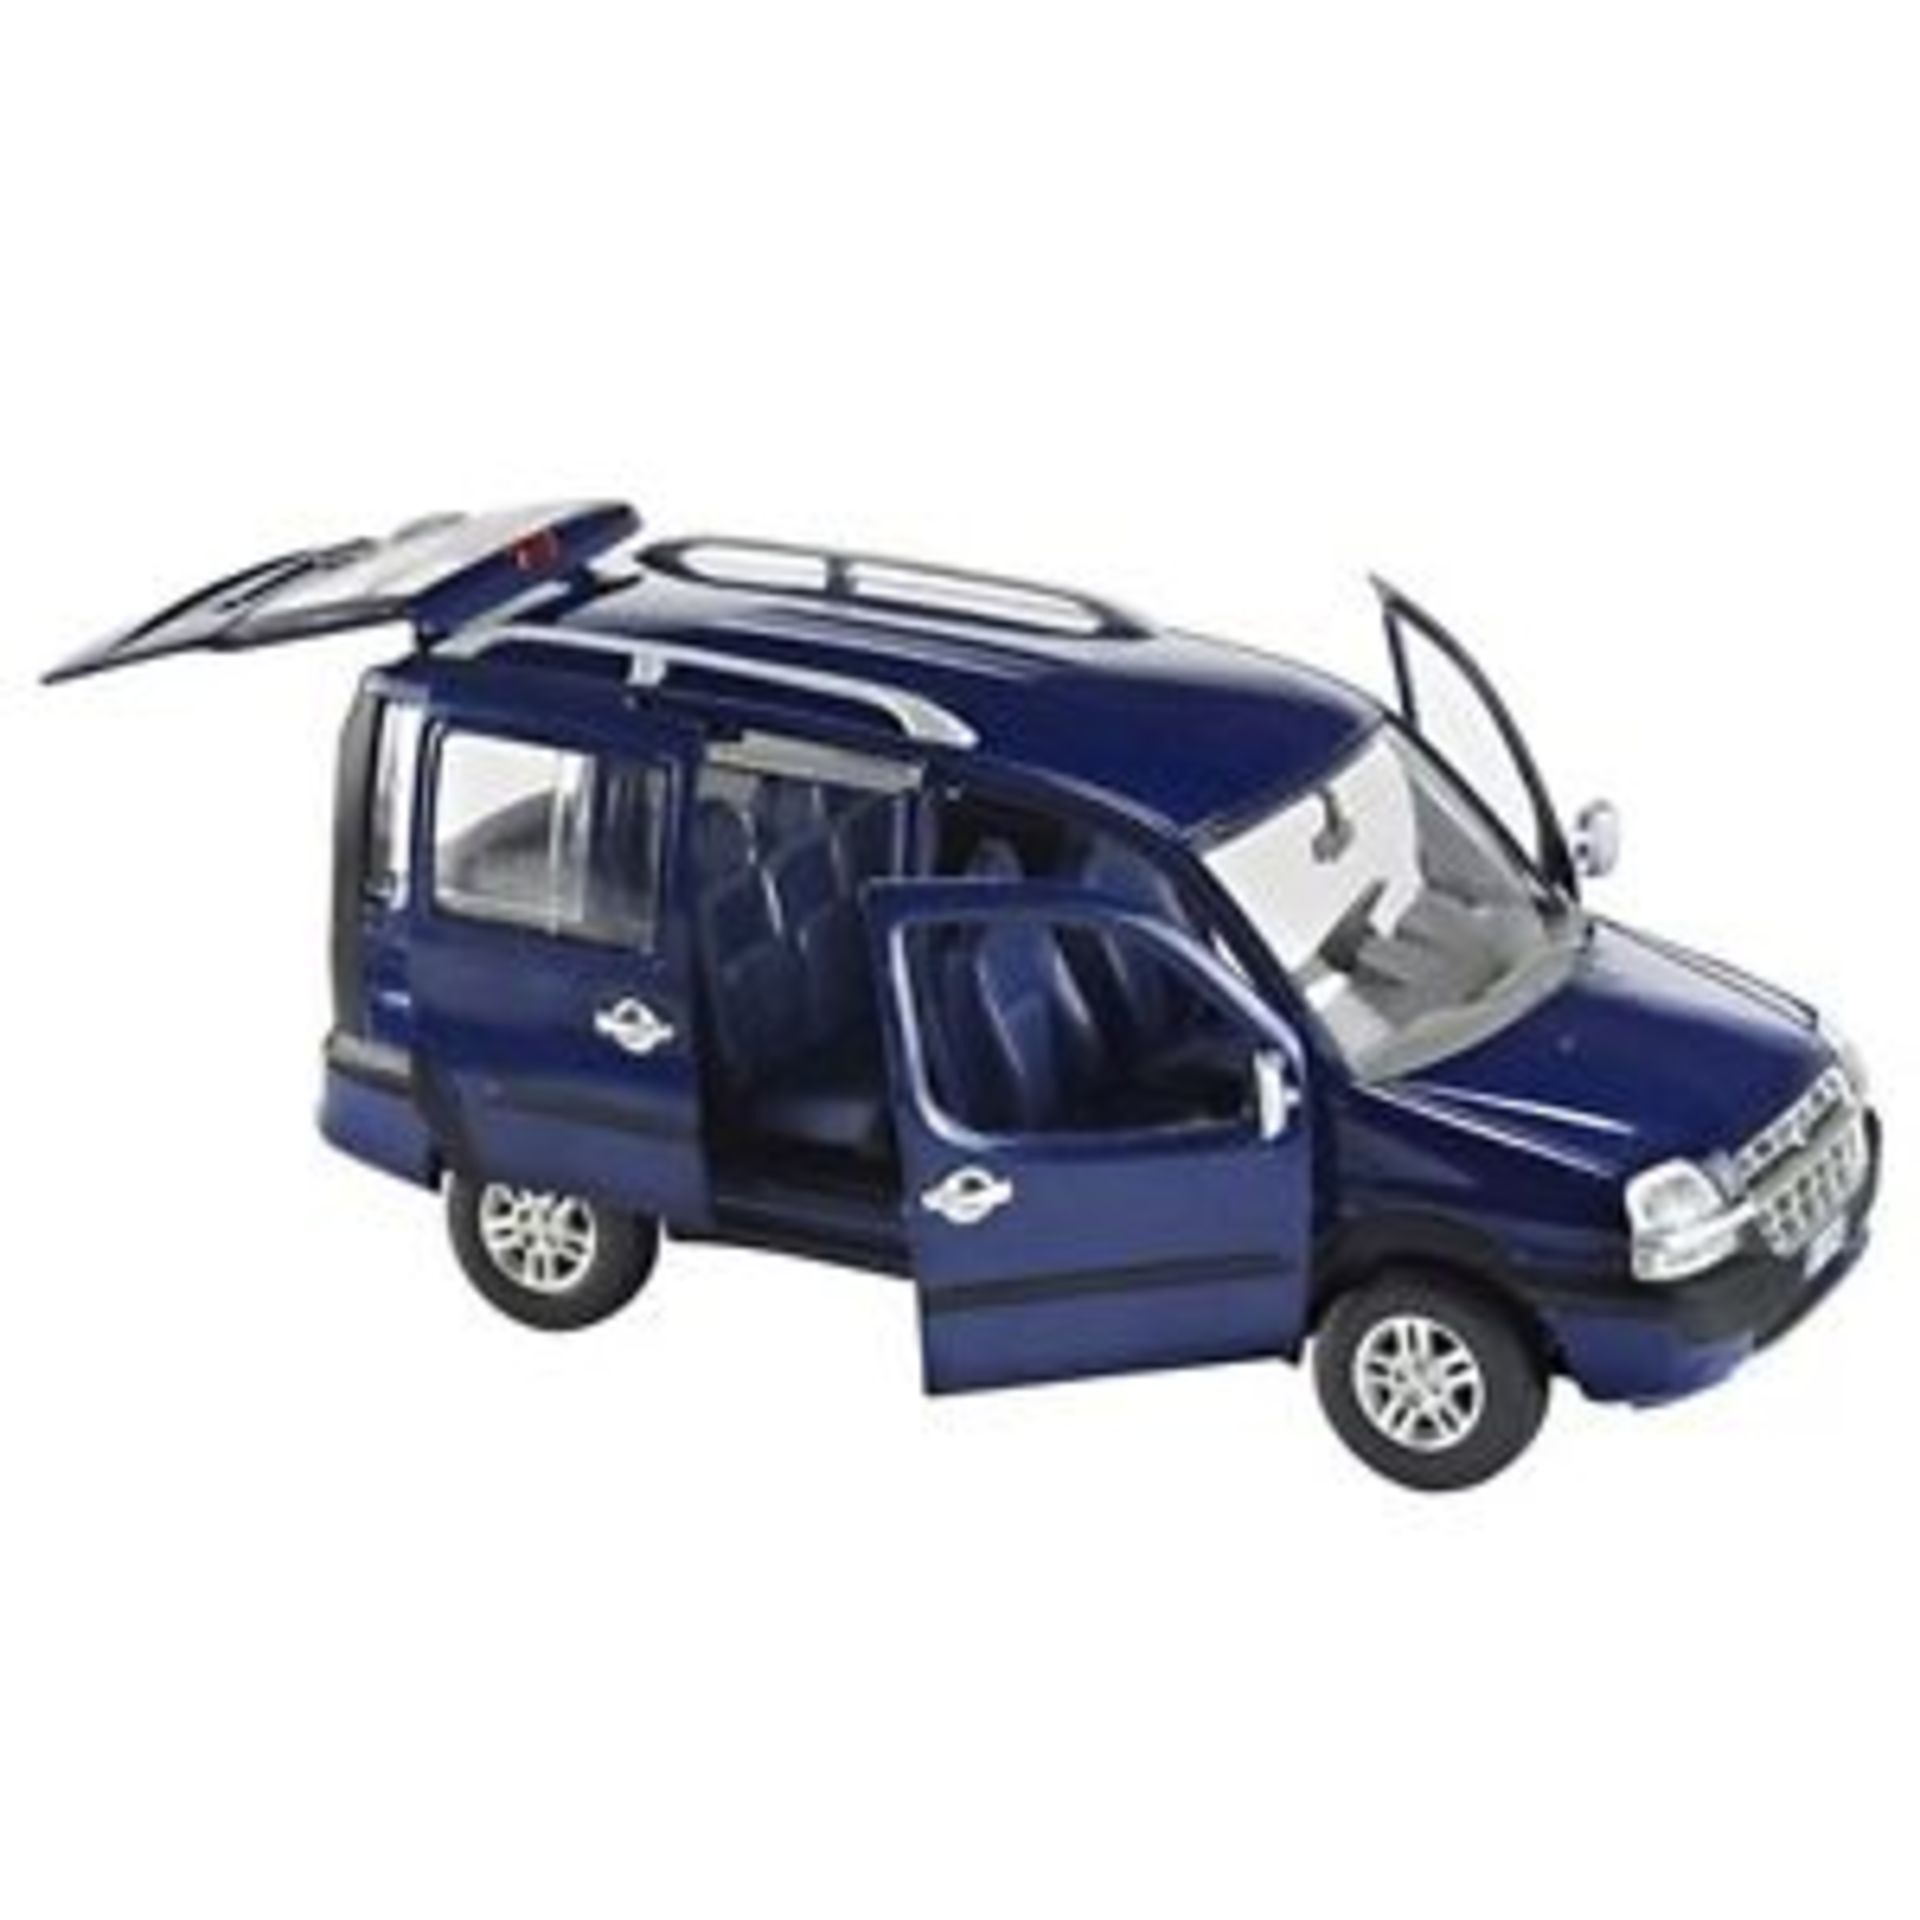 Lot 10034 - V Brand New 1/24 Die Cast Fiat Doblo Malibu - eBay Price £16.99